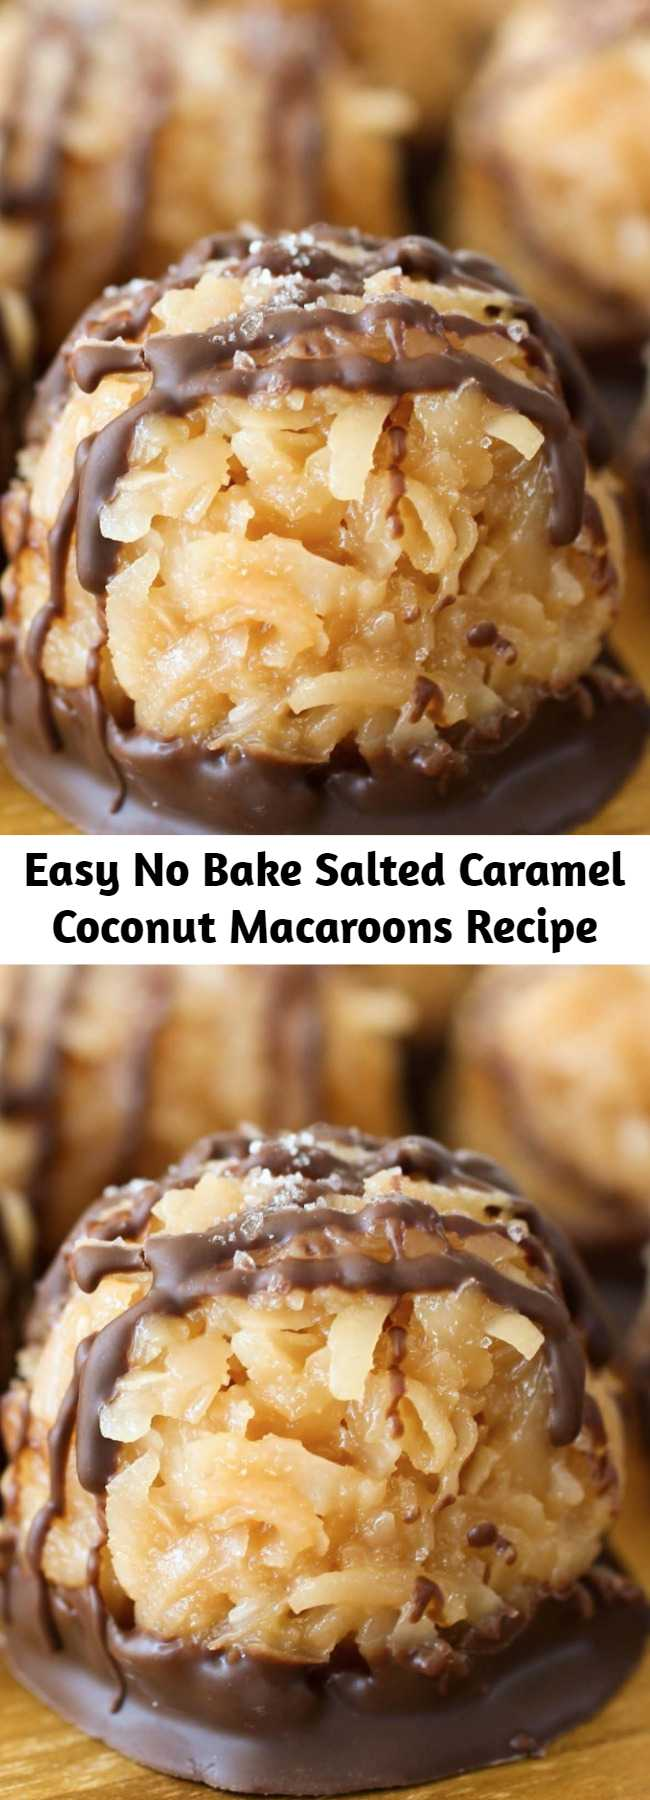 Easy No Bake Salted Caramel Coconut Macaroons Recipe - These No-Bake Salted Caramel Coconut Macaroons are so very easy that they may just become your go-to cookie recipe when you need something fast. Sweet coconut gets stirred into gooey caramel to form macaroons - then everything gets dipped and drizzled in chocolate. That's a lot of happiness to share!